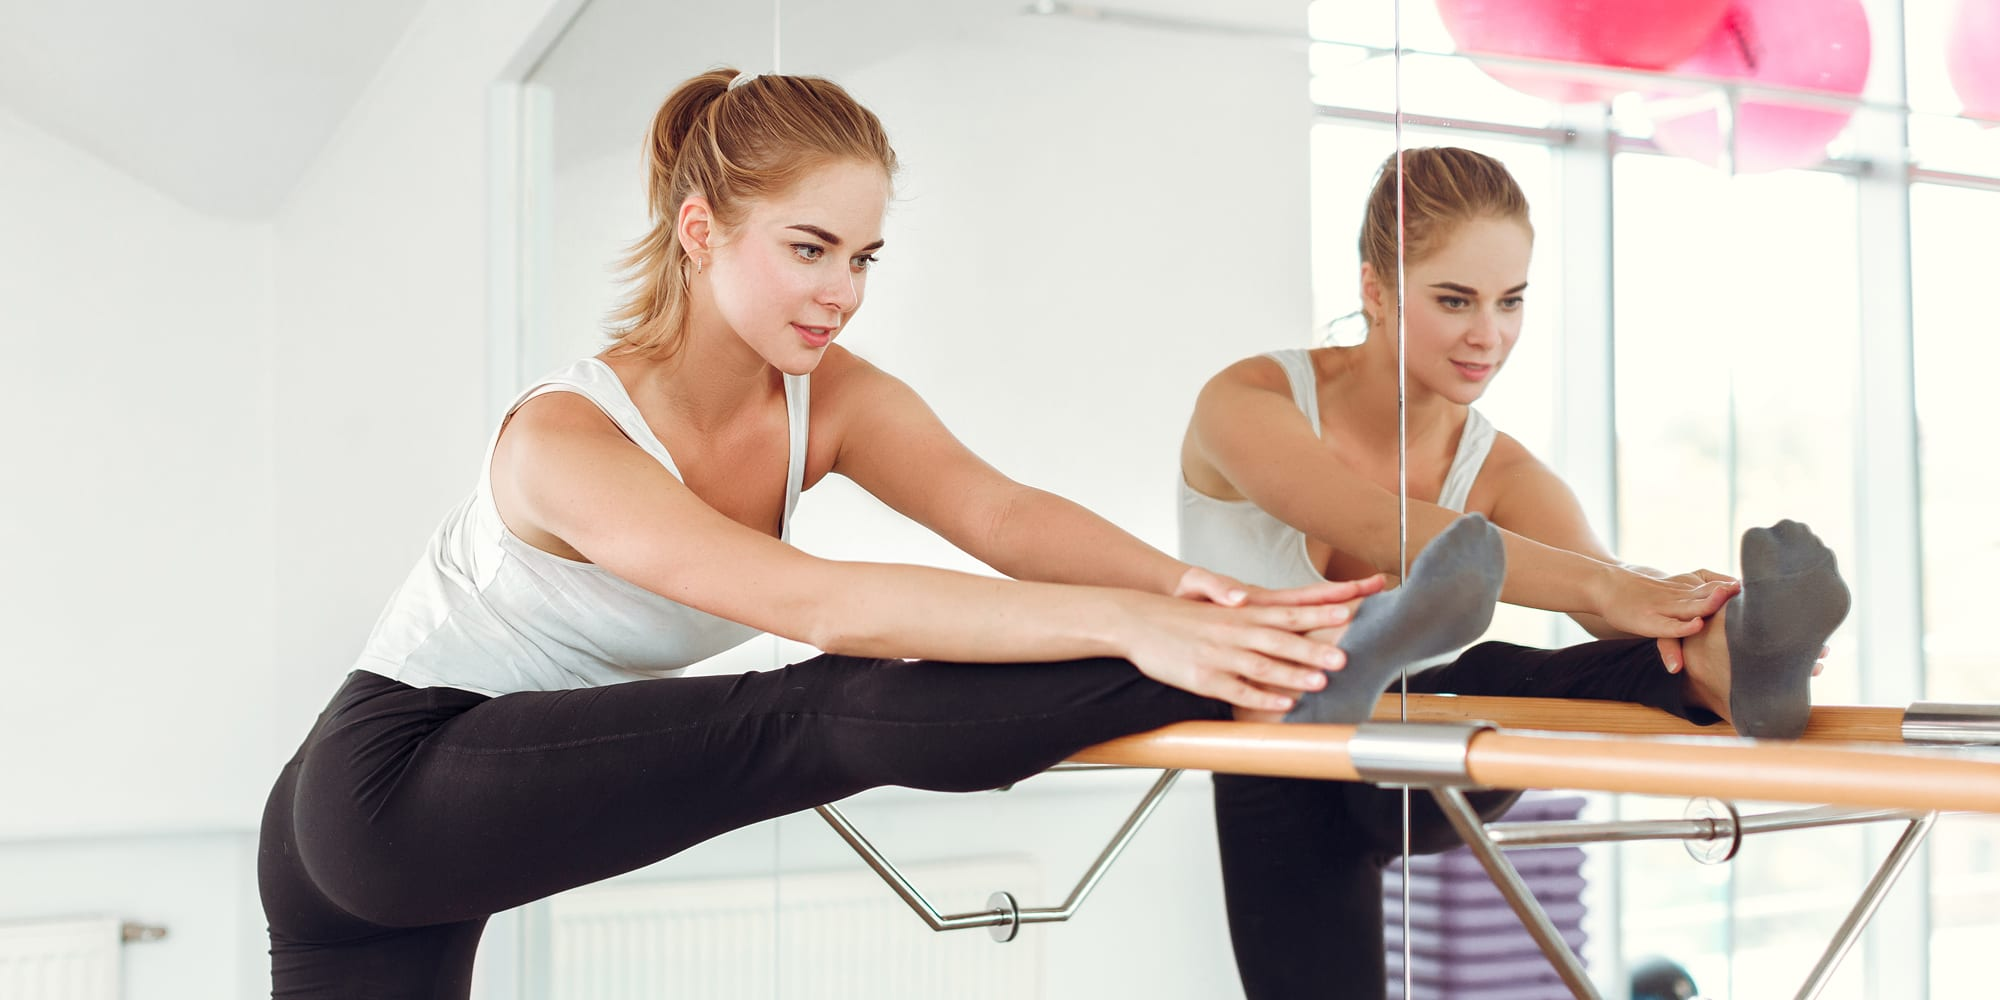 The Best Grip Socks for Your Next Barre Workout